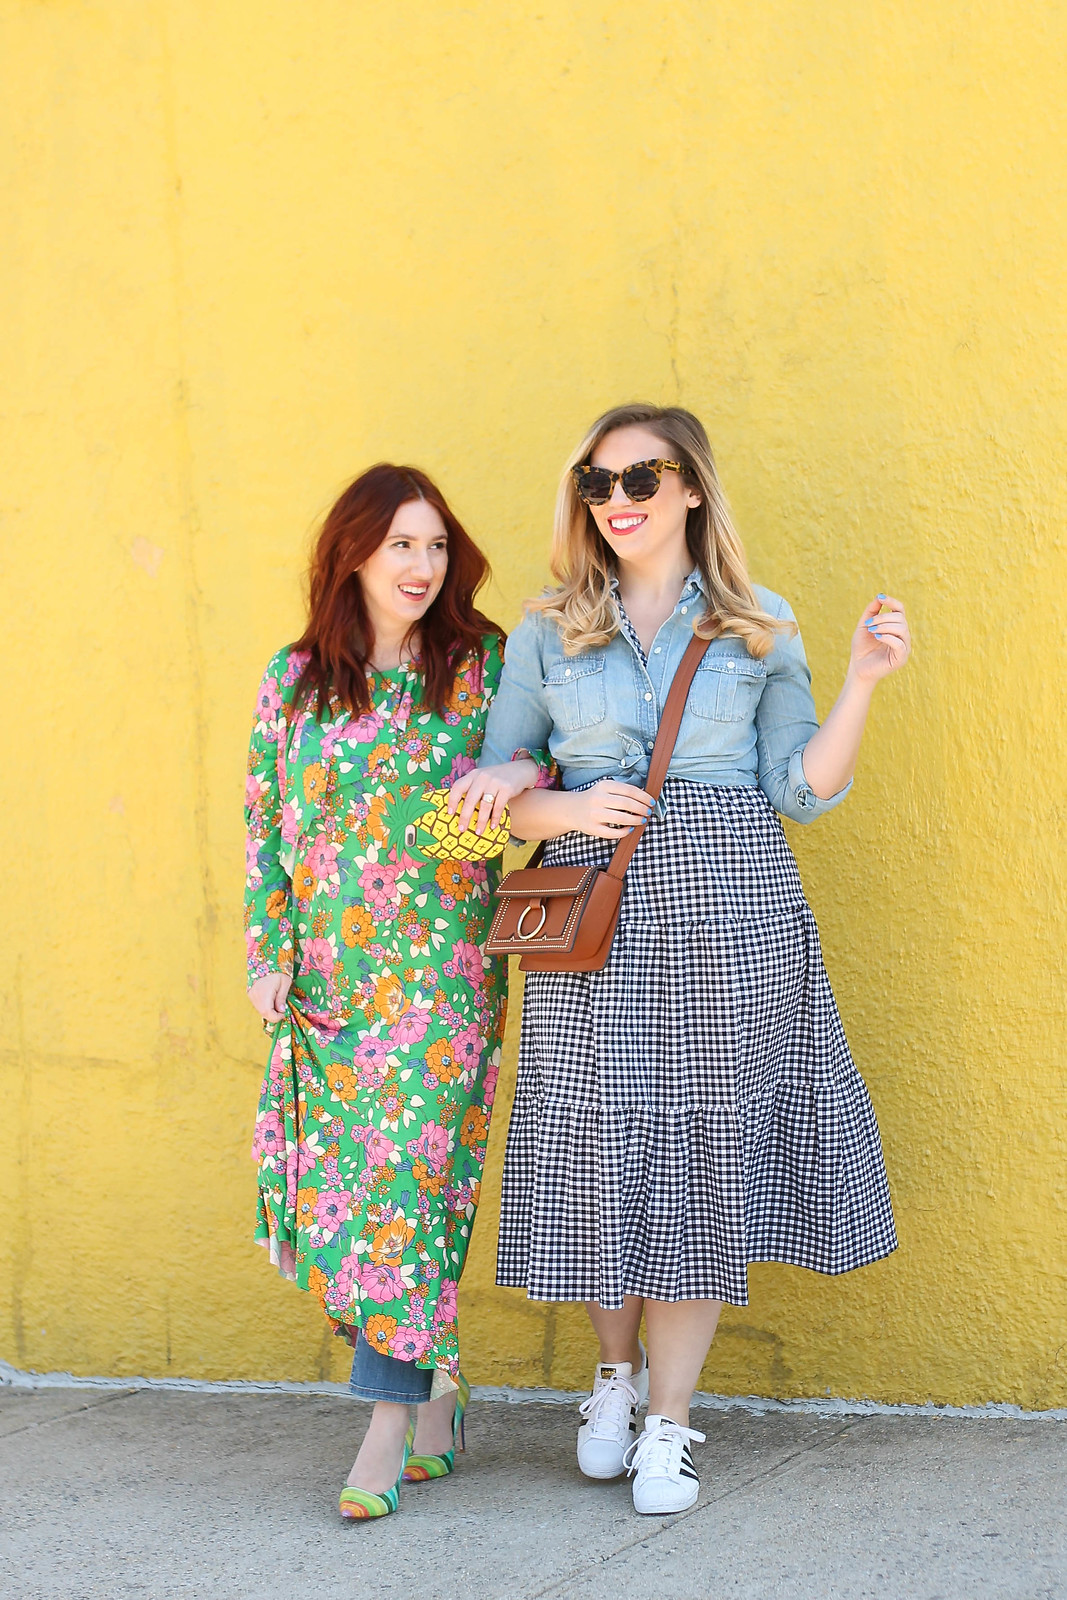 Fun Blogger Approved Spring Layered Outfits New York City Fashion Bloggers Floral Dress Gingham Dress Yellow Wall